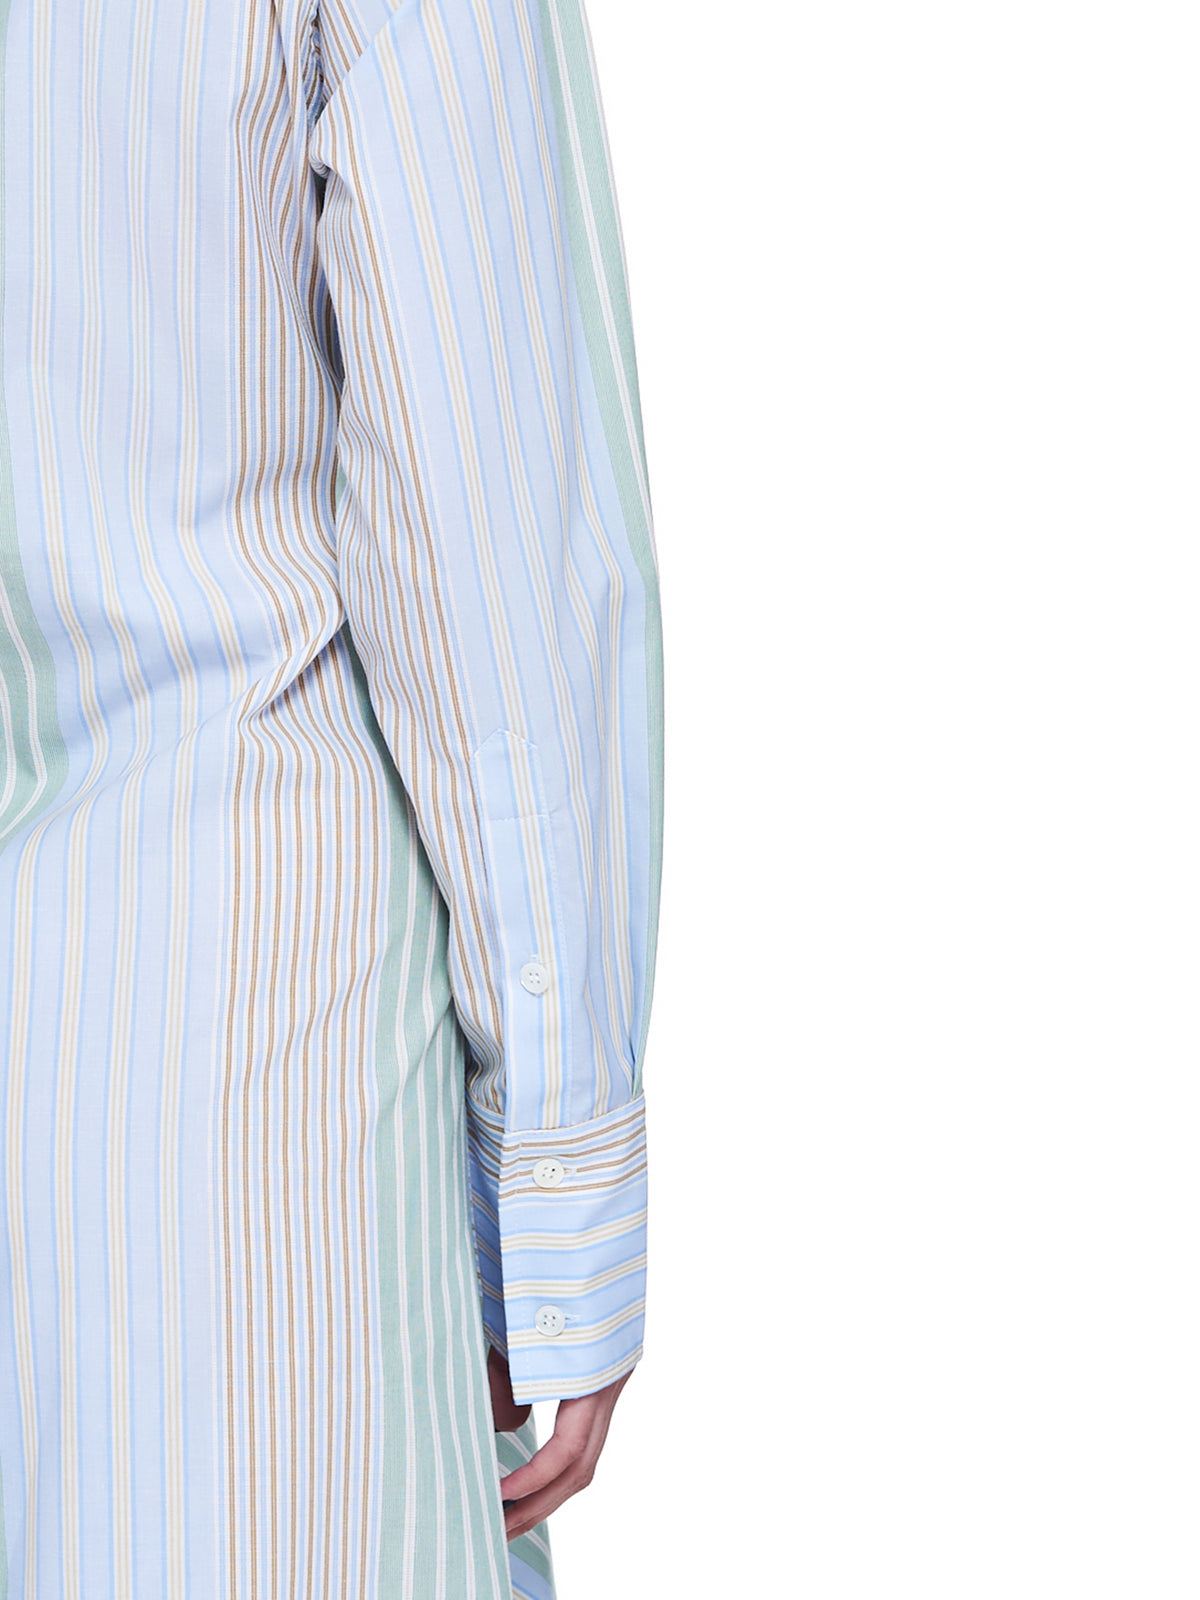 JW Anderson Shirt Dress | H.Lorenzo - detail 2